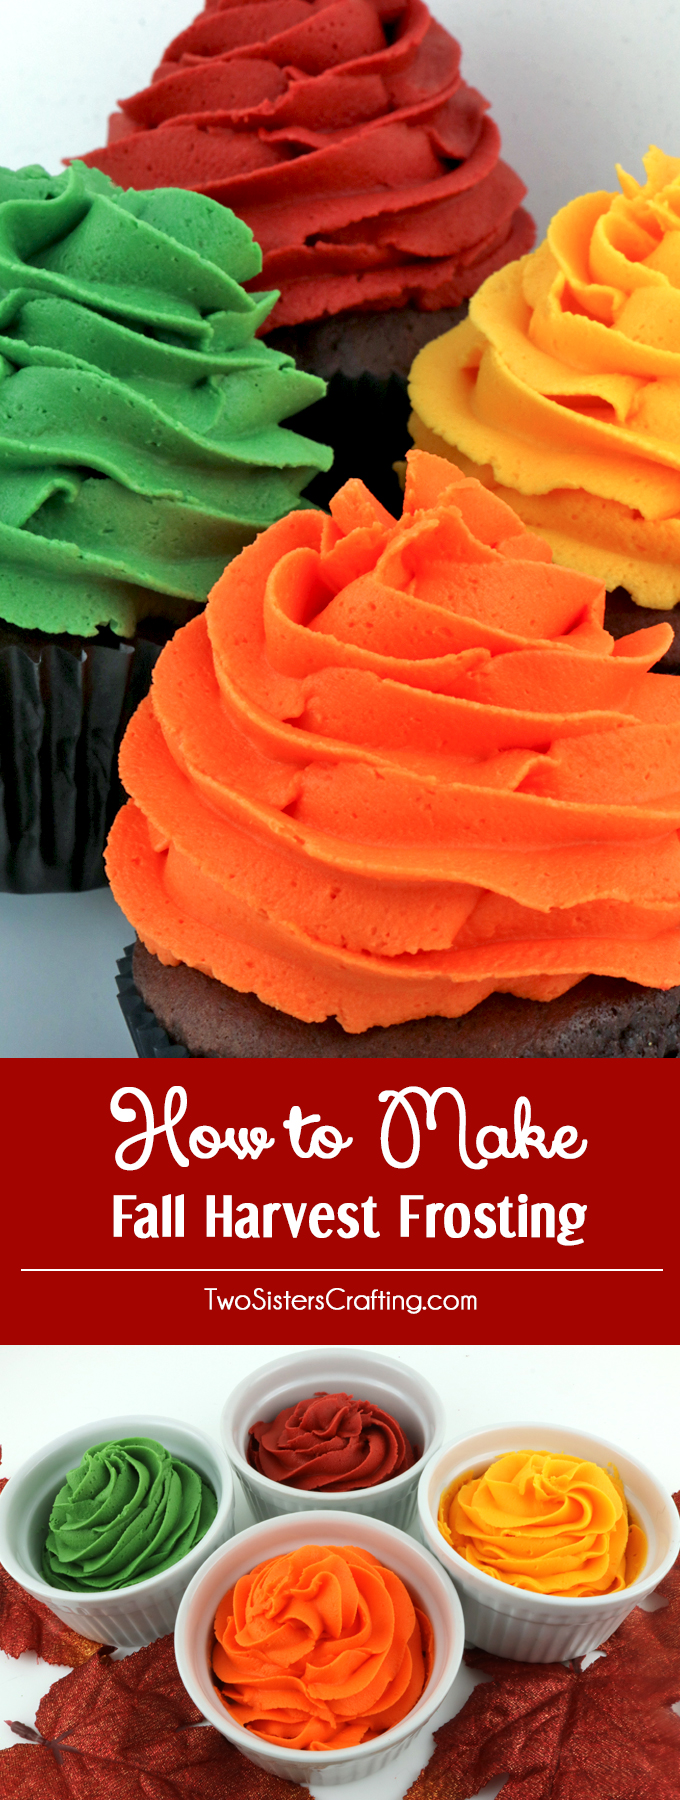 how to make fall harvest frosting two sisters